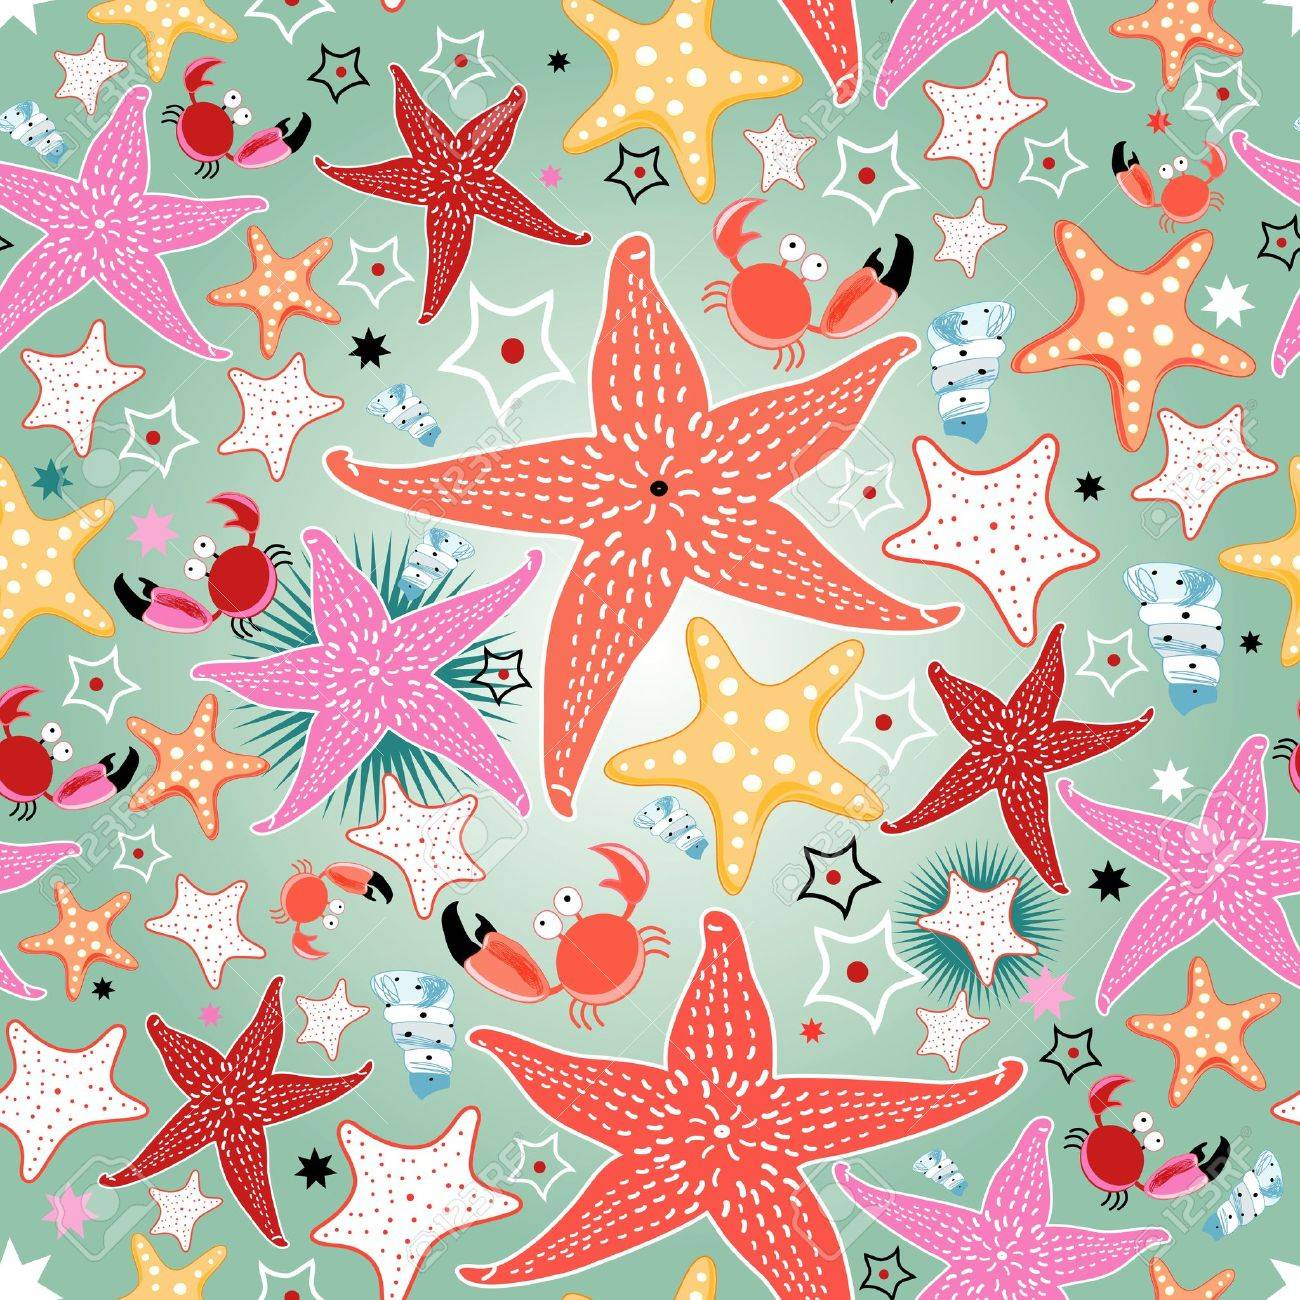 seamless bright pattern of sea stars on a light green background - 19581000